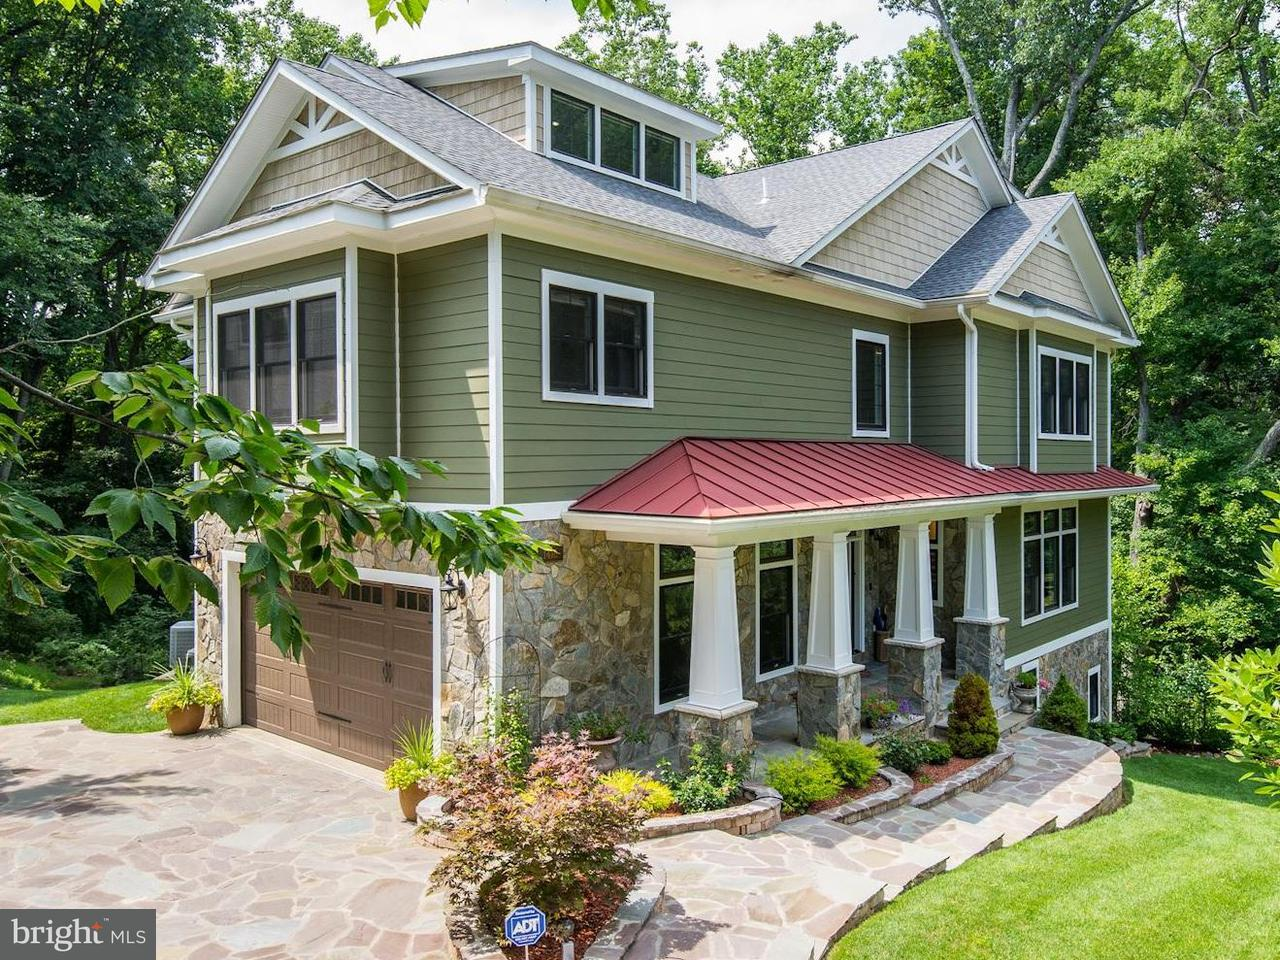 Single Family Home for Sale at 1416 Grady Randall Court 1416 Grady Randall Court McLean, Virginia 22101 United States